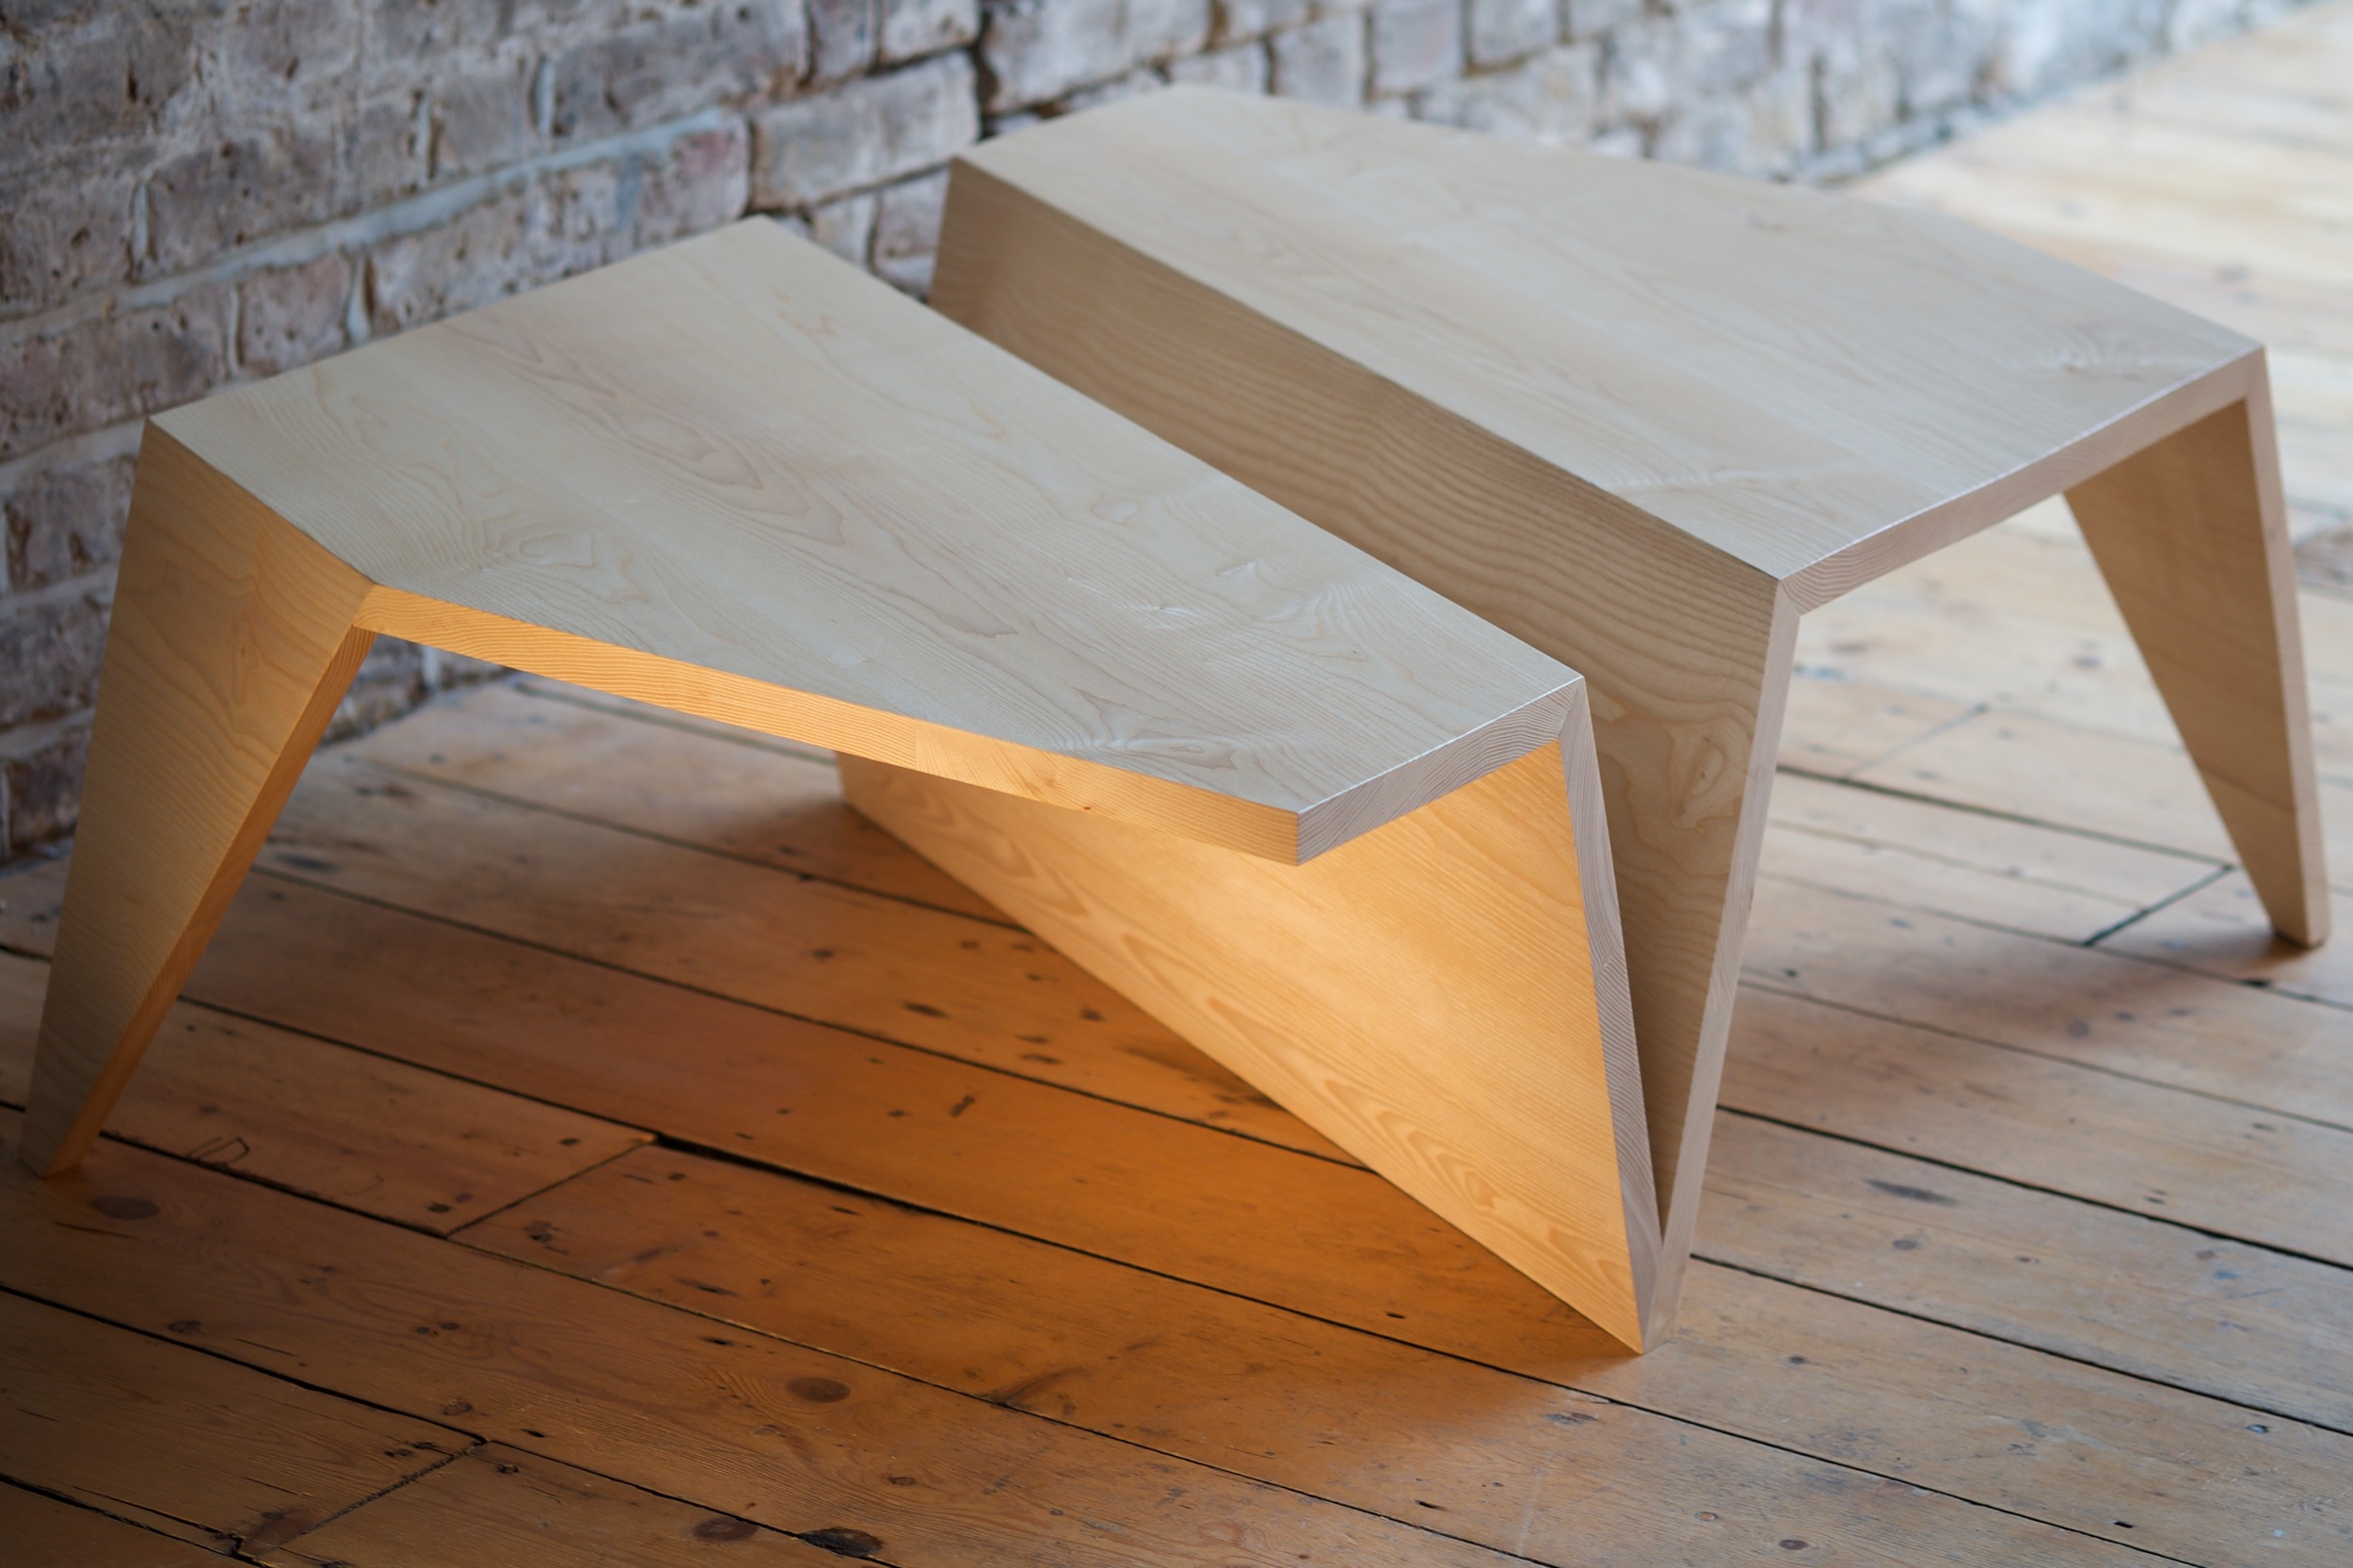 Origami Low Coffee Table in situ